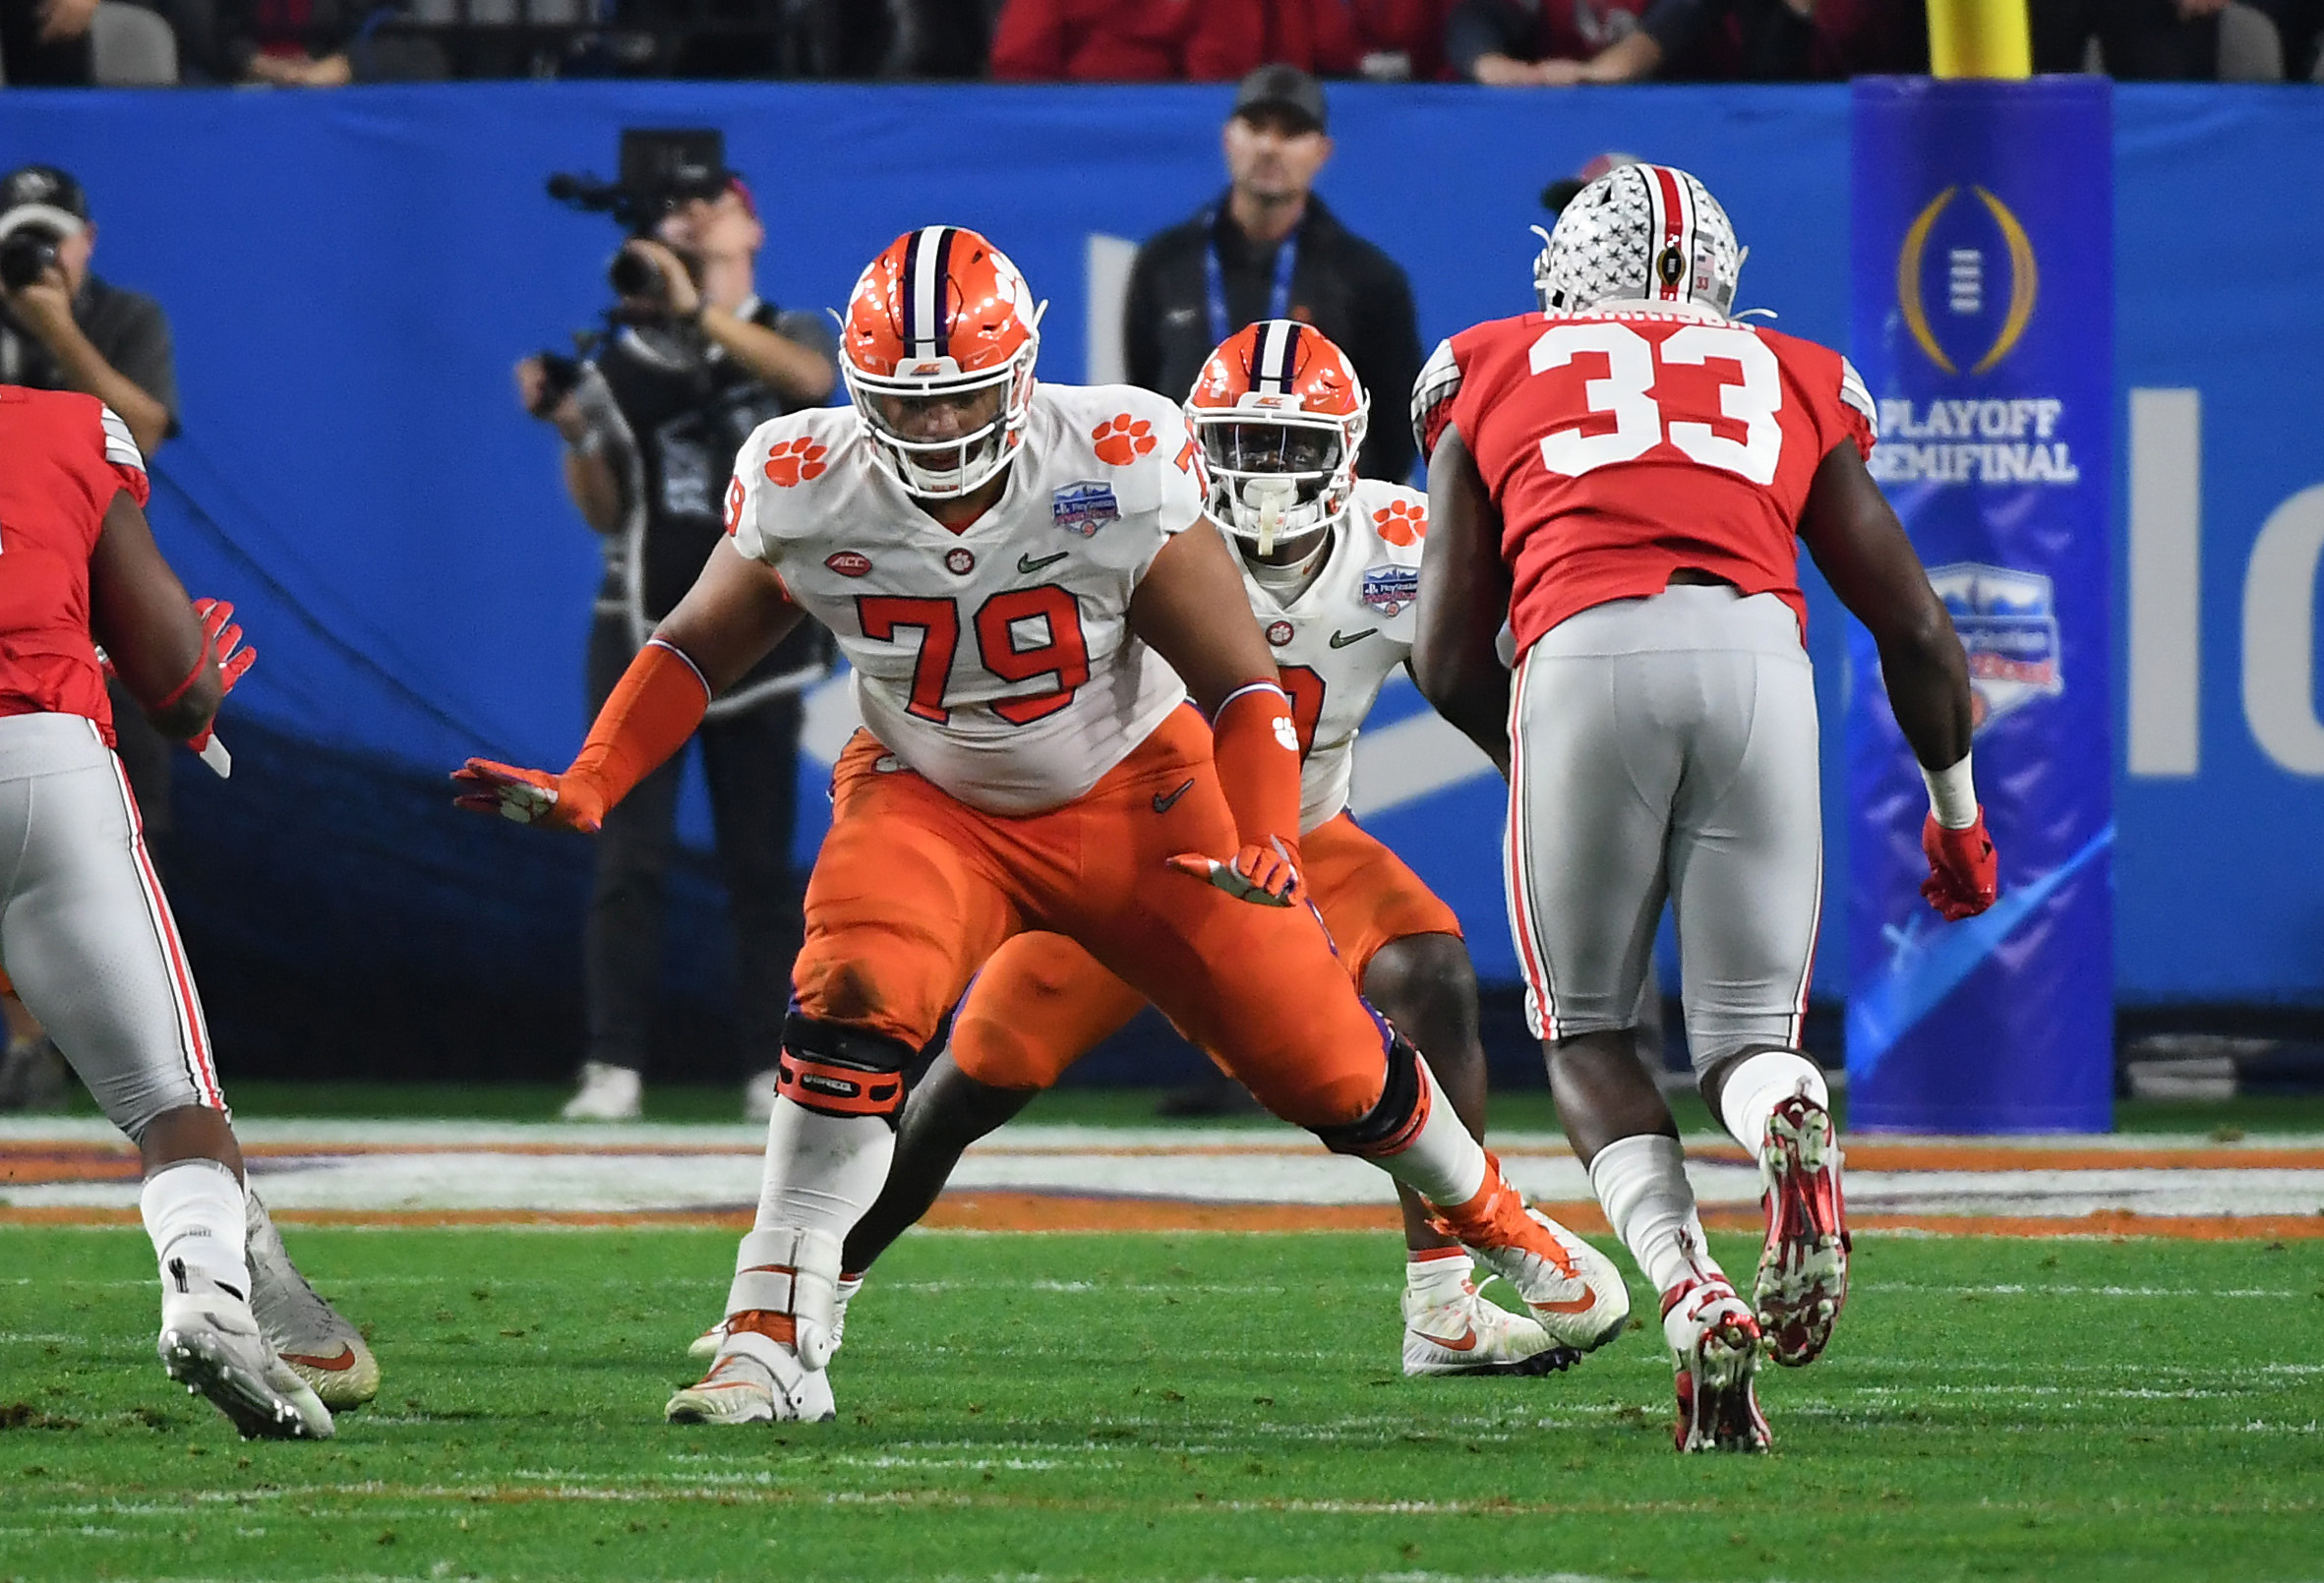 College Football Playoff Semifinal at the PlayStation Fiesta Bowl - Clemson v Ohio State